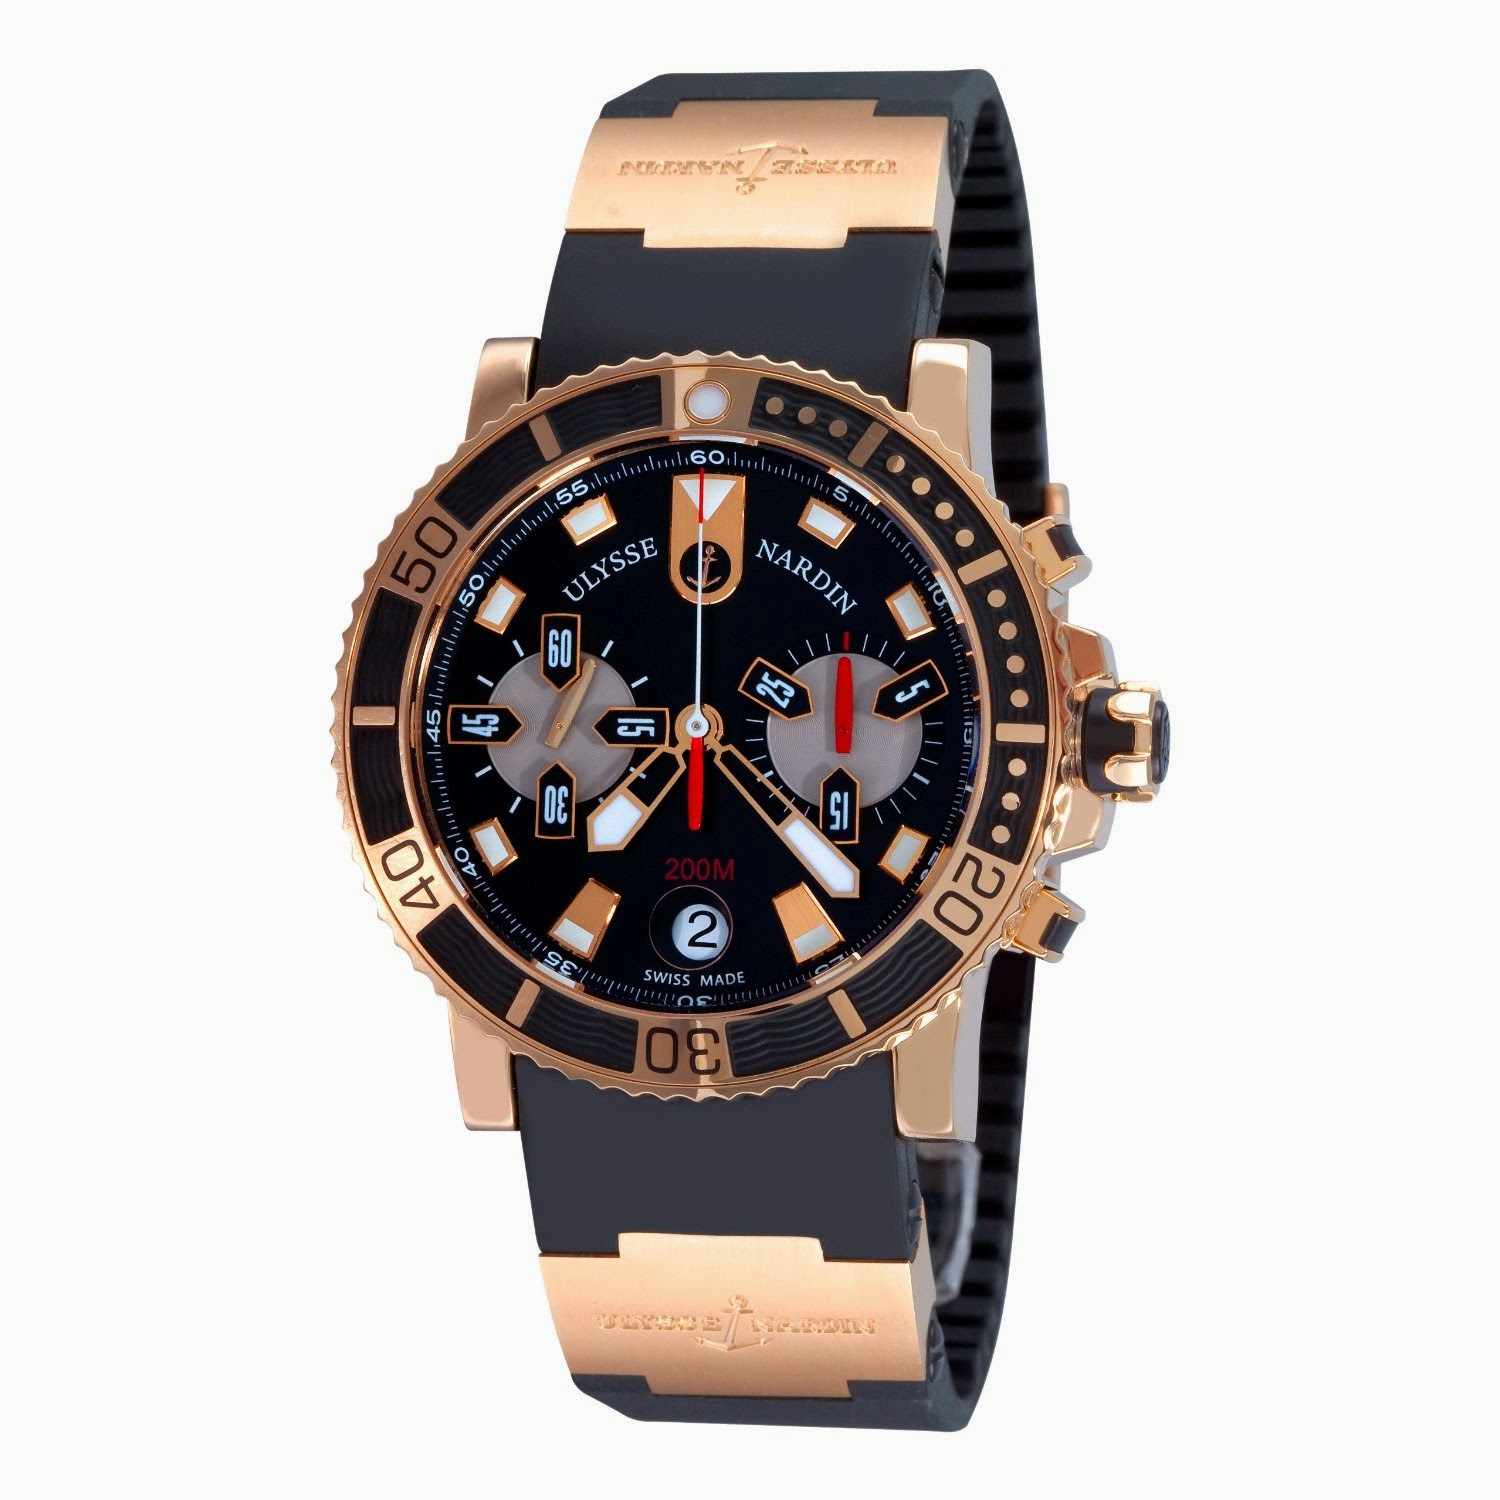 Luxury Watch Brands For Mens The Luxury Mens Trainer Brands You Should Know